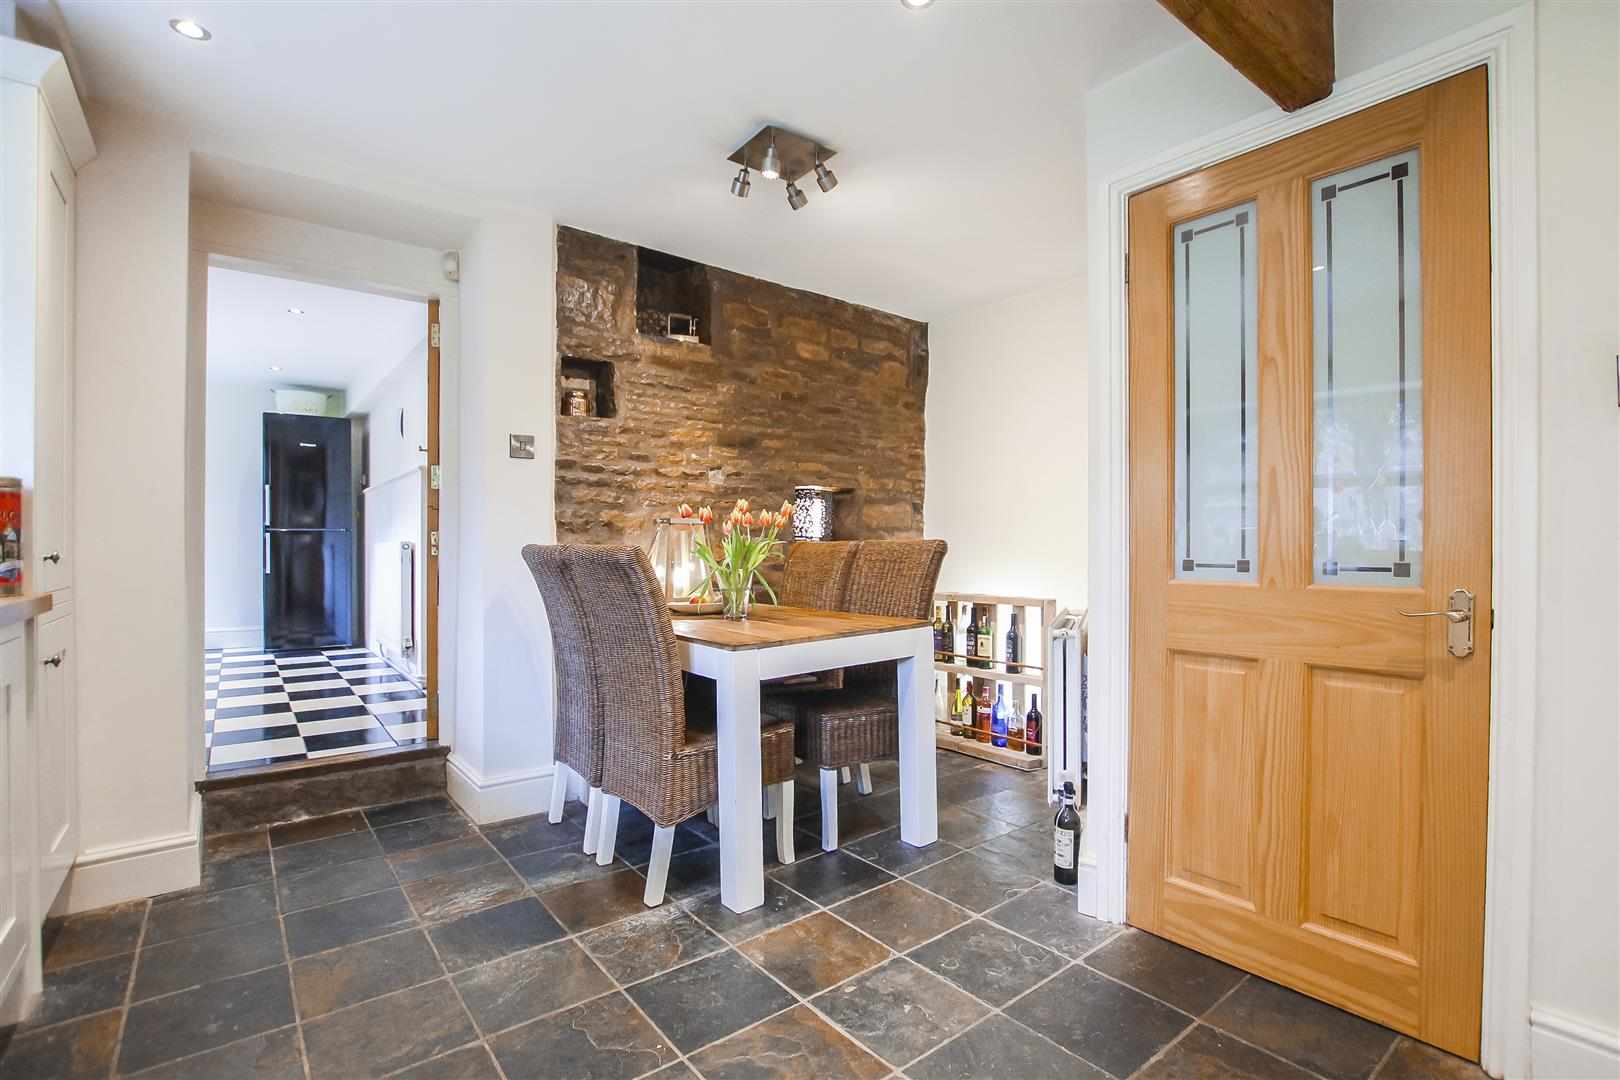 4 Bedroom Farmhouse For Sale - Image 13